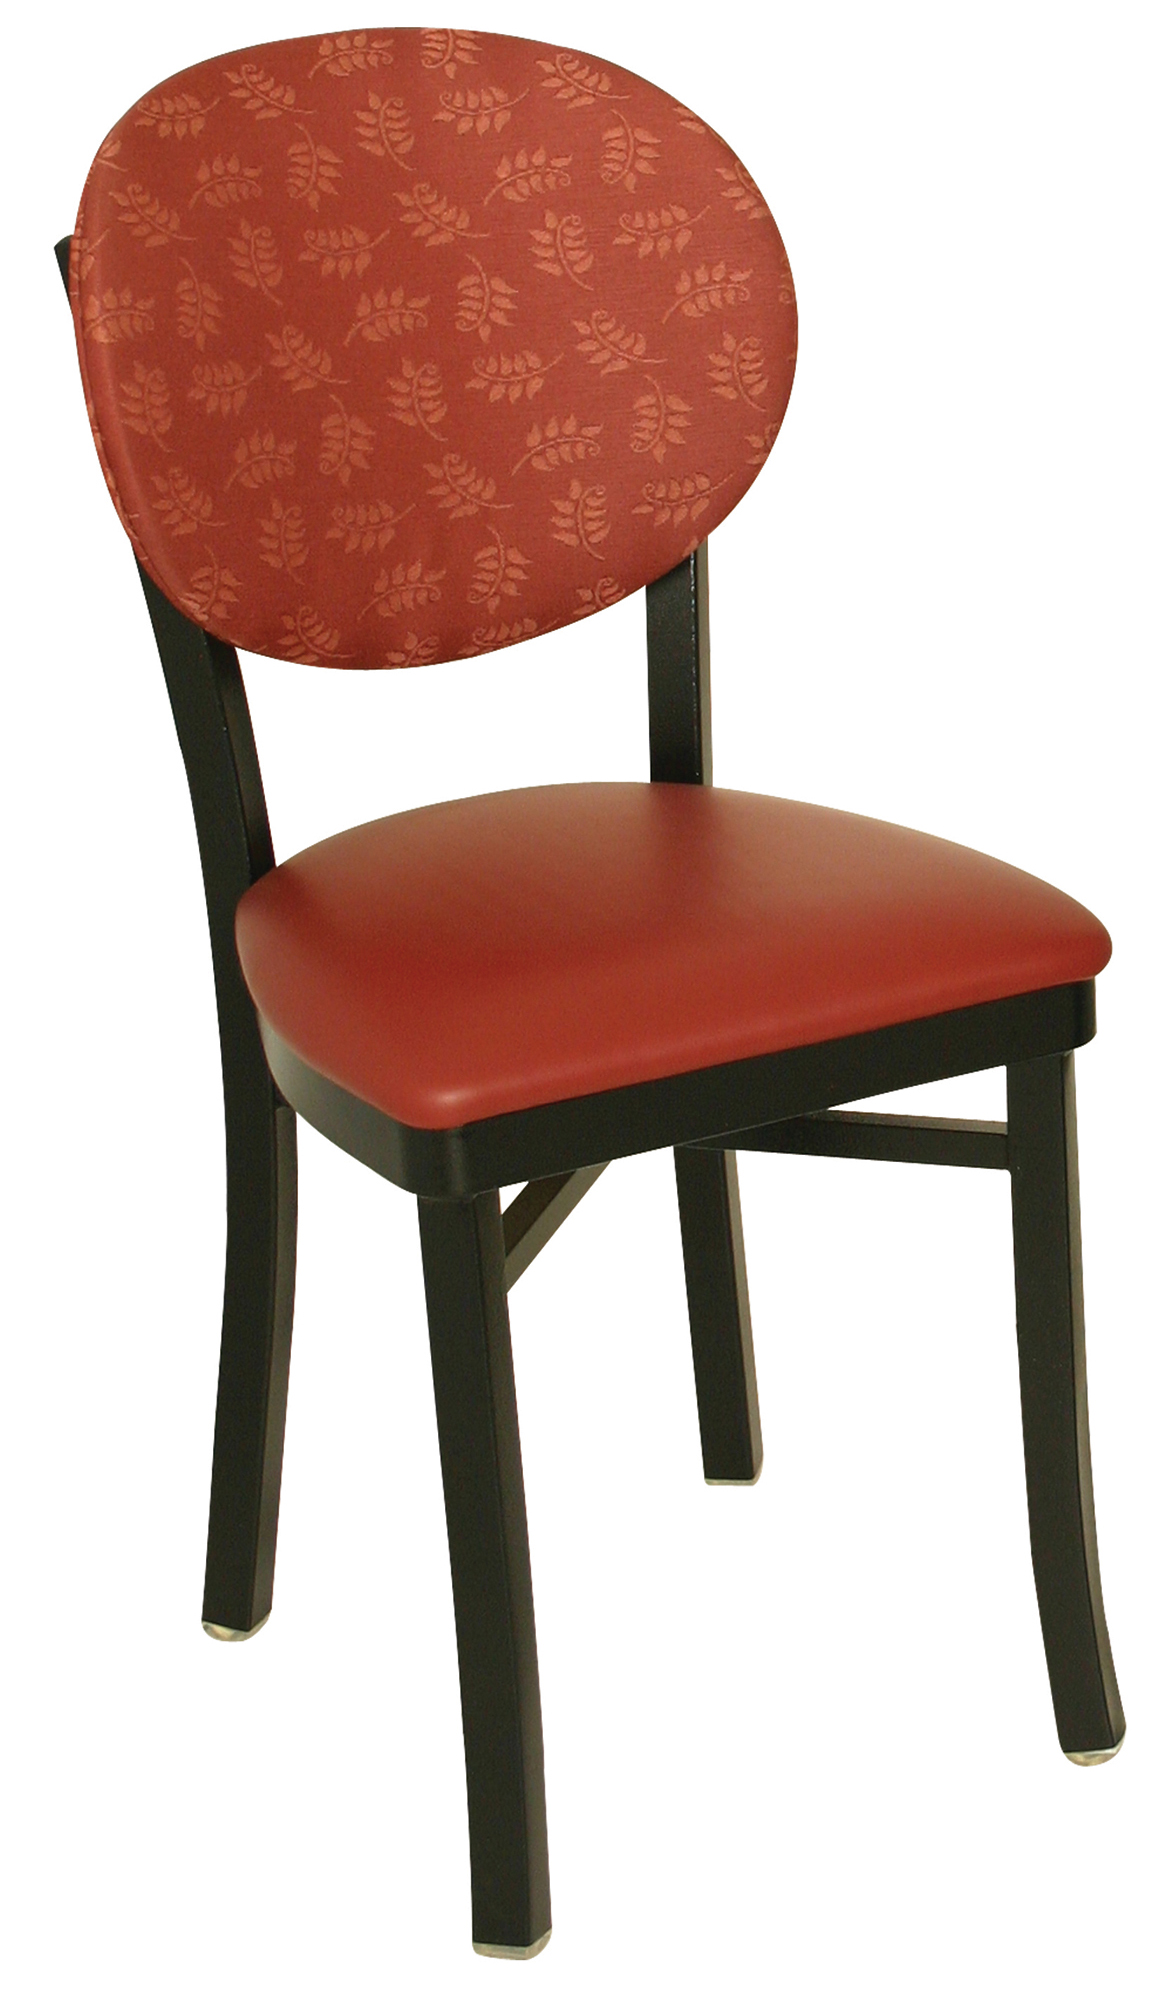 Rounded Back Chair